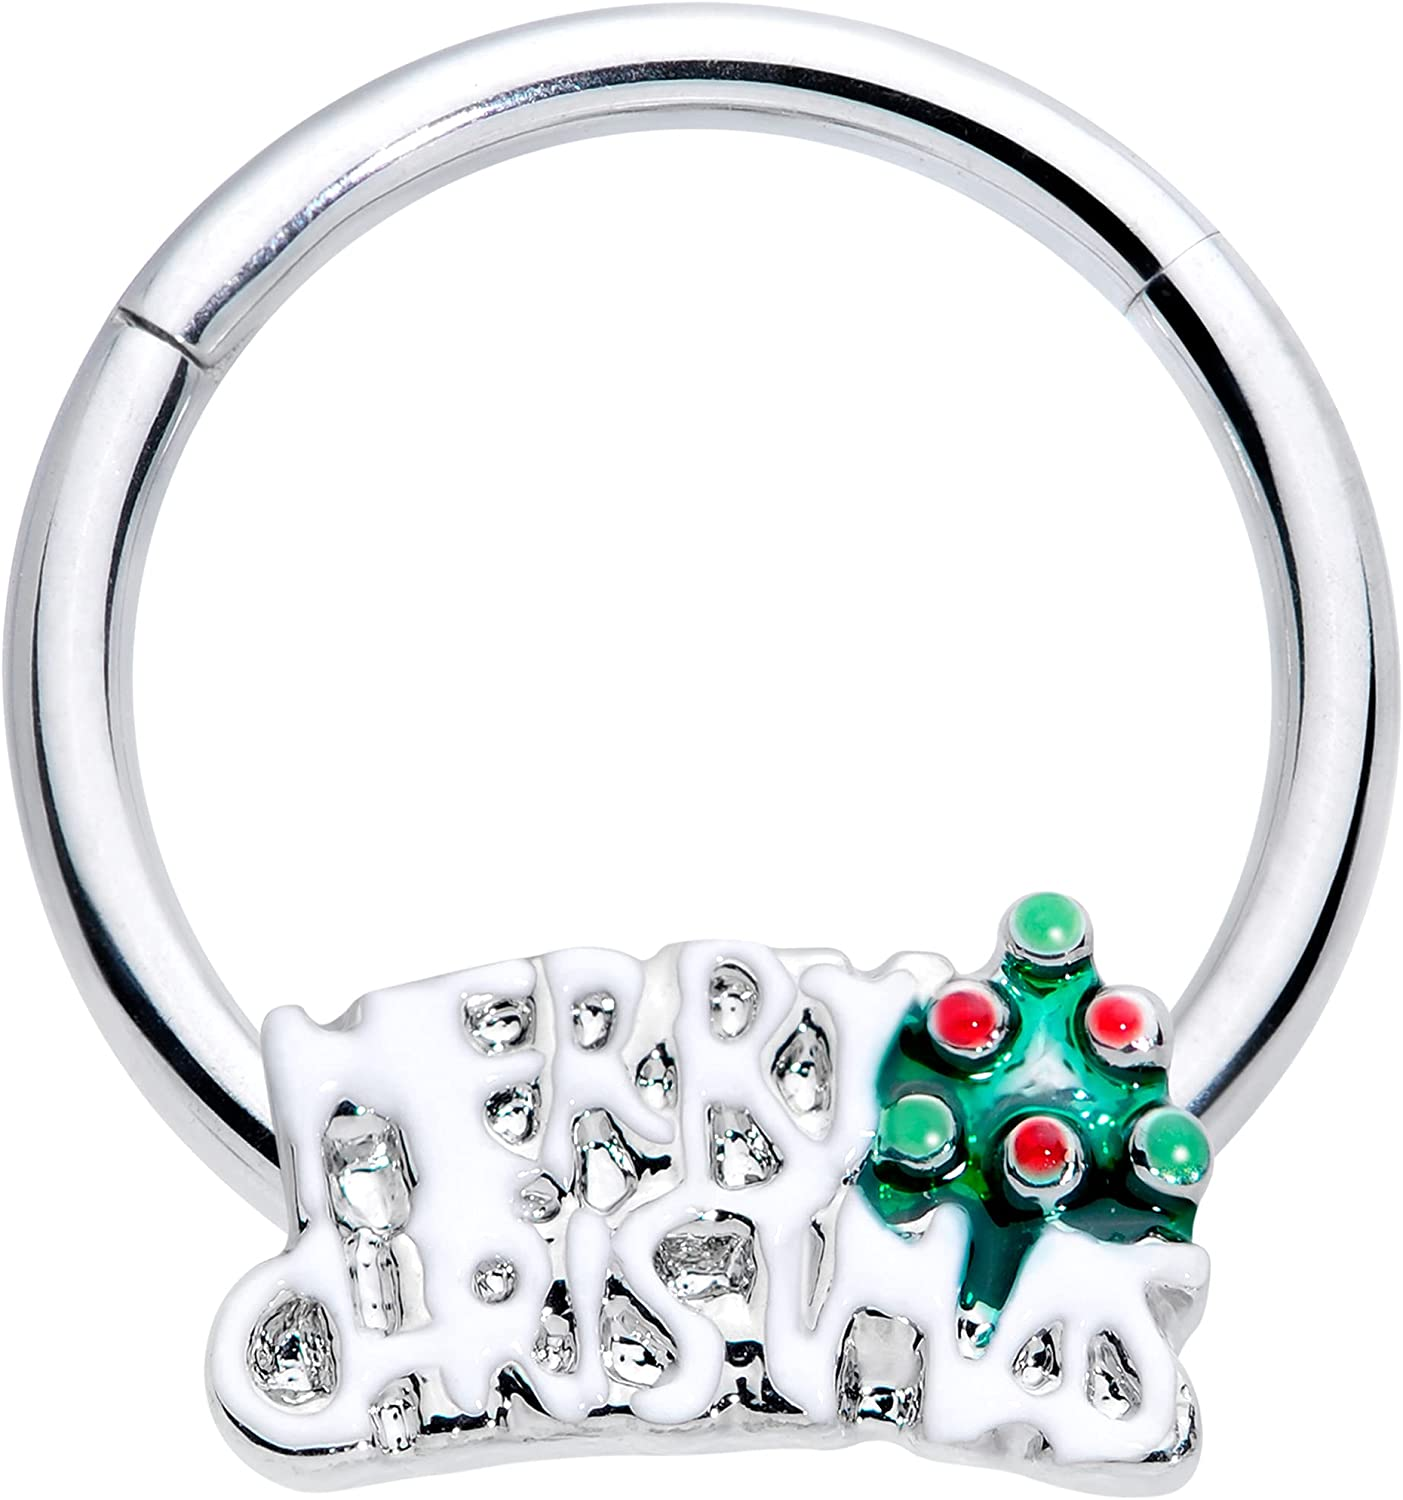 Body Candy Womens 16G Steel Hinged Segment Ring Seamless Cartilage Nipple Ring Red Green Tree Nose Hoop 3/8